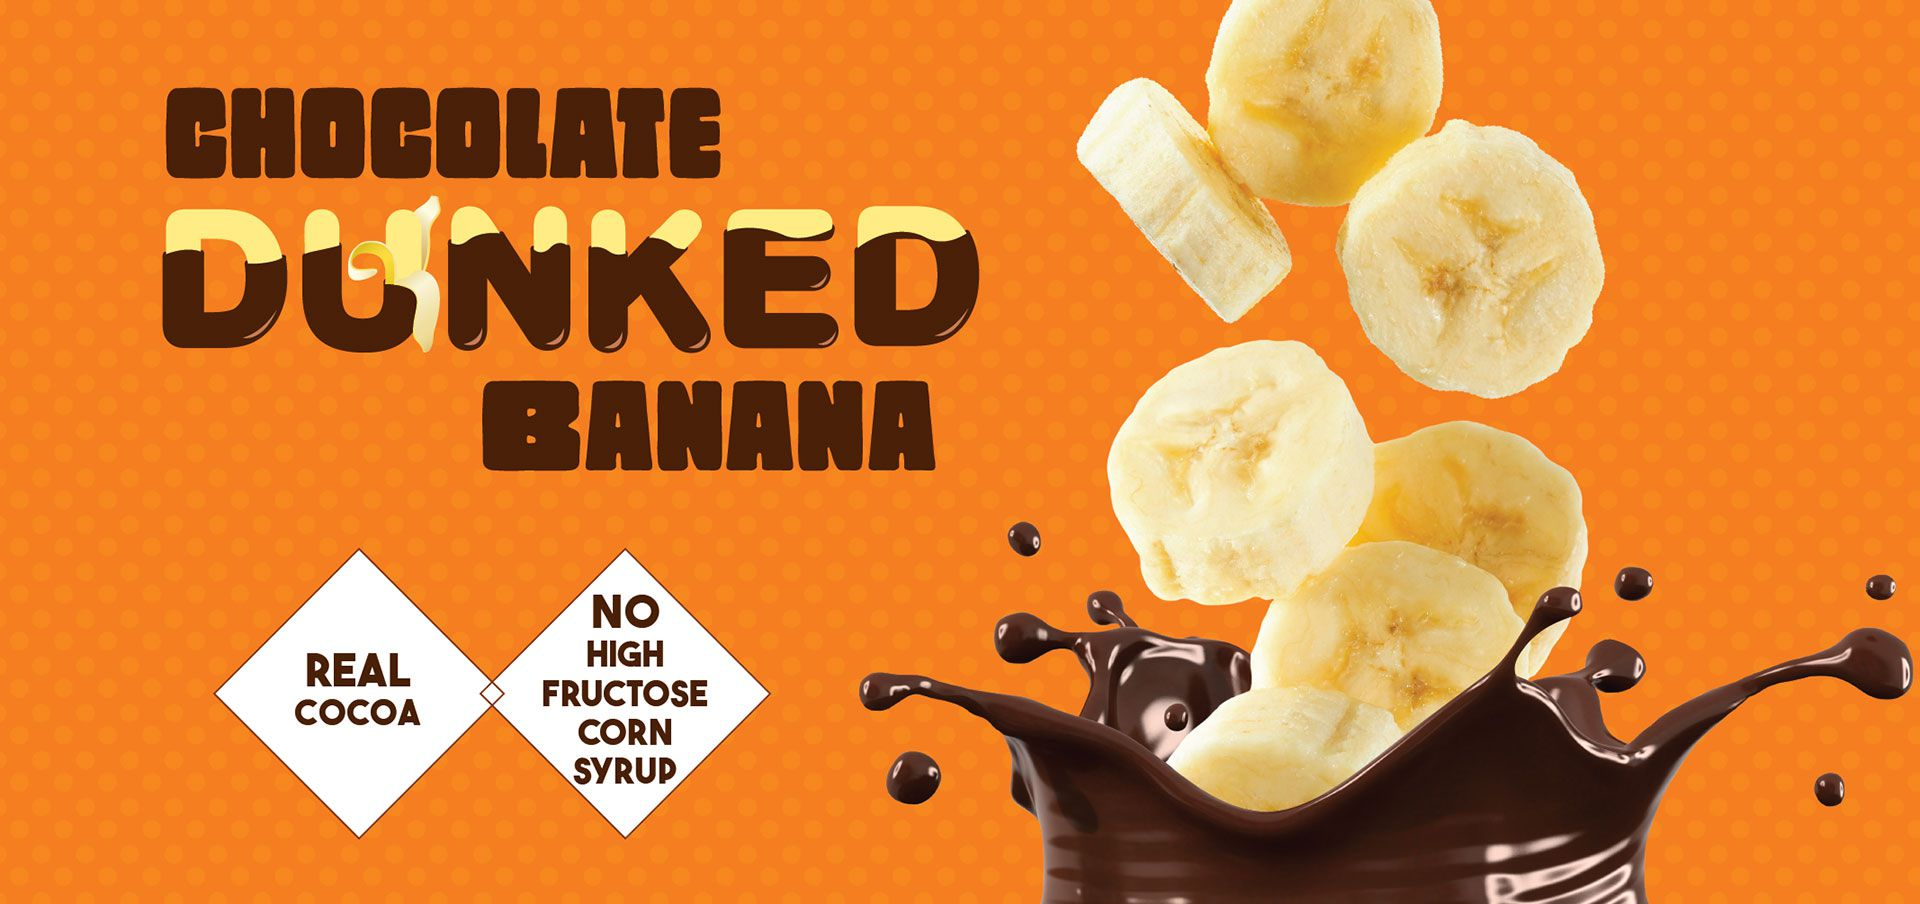 chocolate dunked banana label image